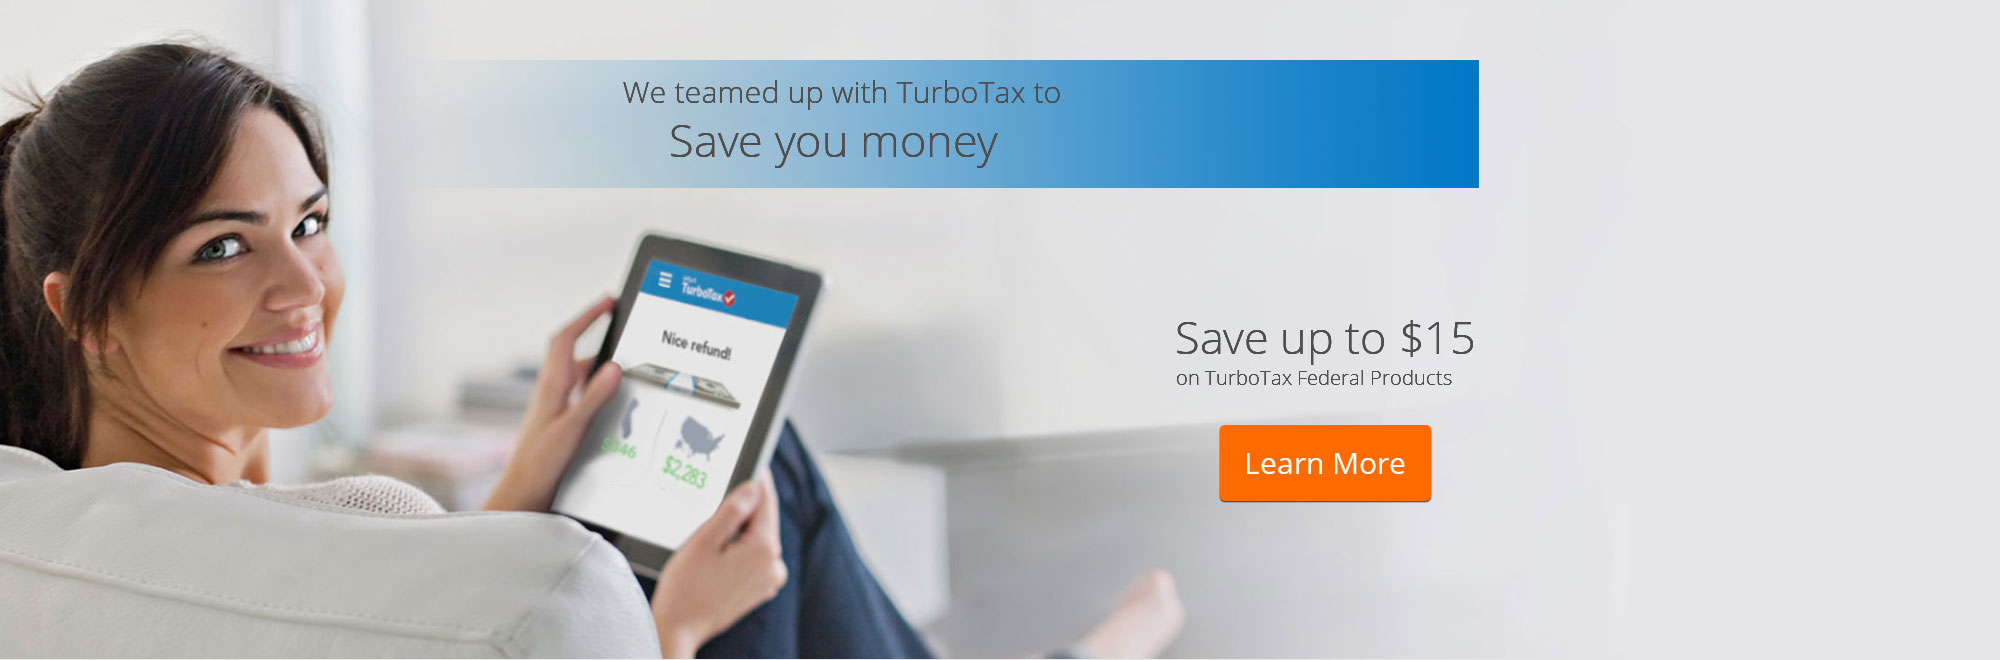 TurboTax Savings